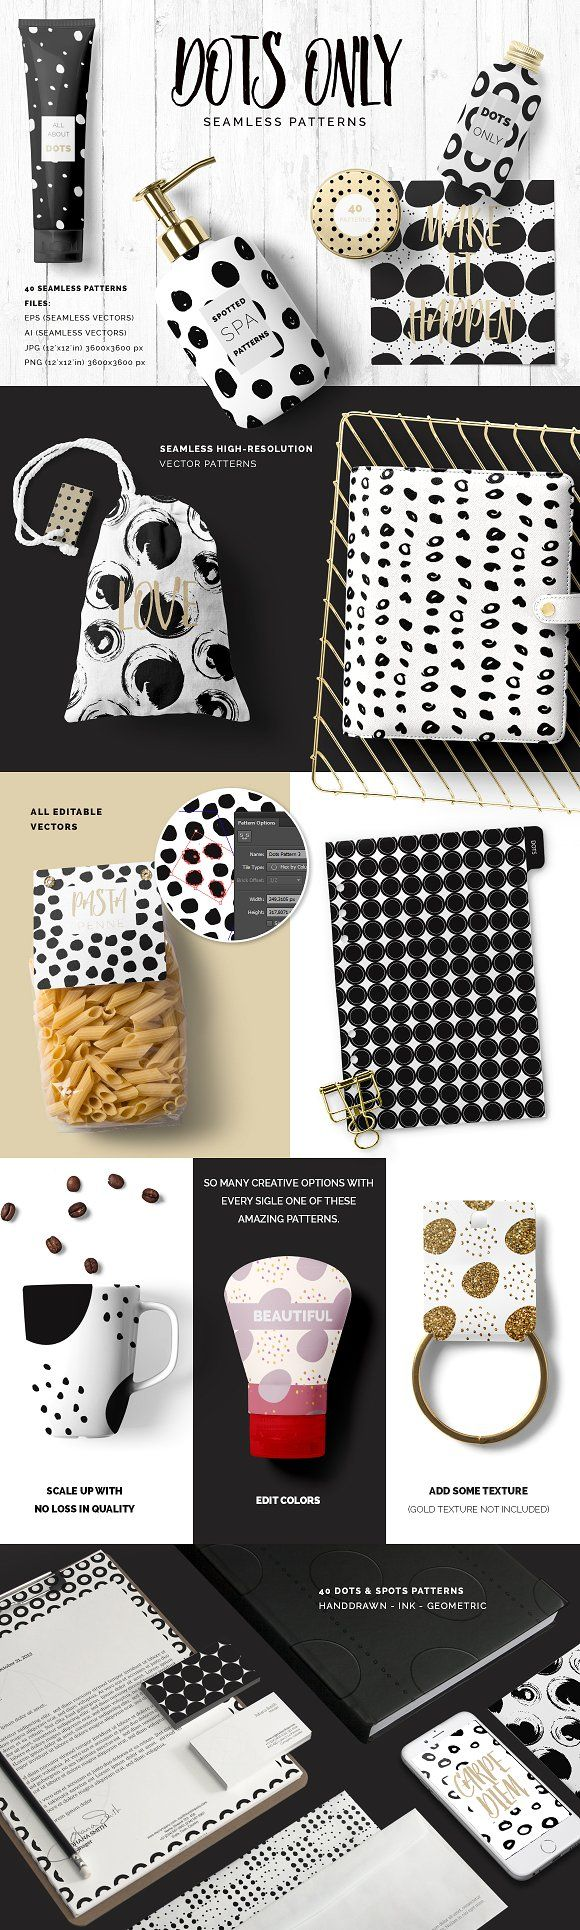 Dots & Spots Seamless Patterns by Youandigraphics on @creativemarket